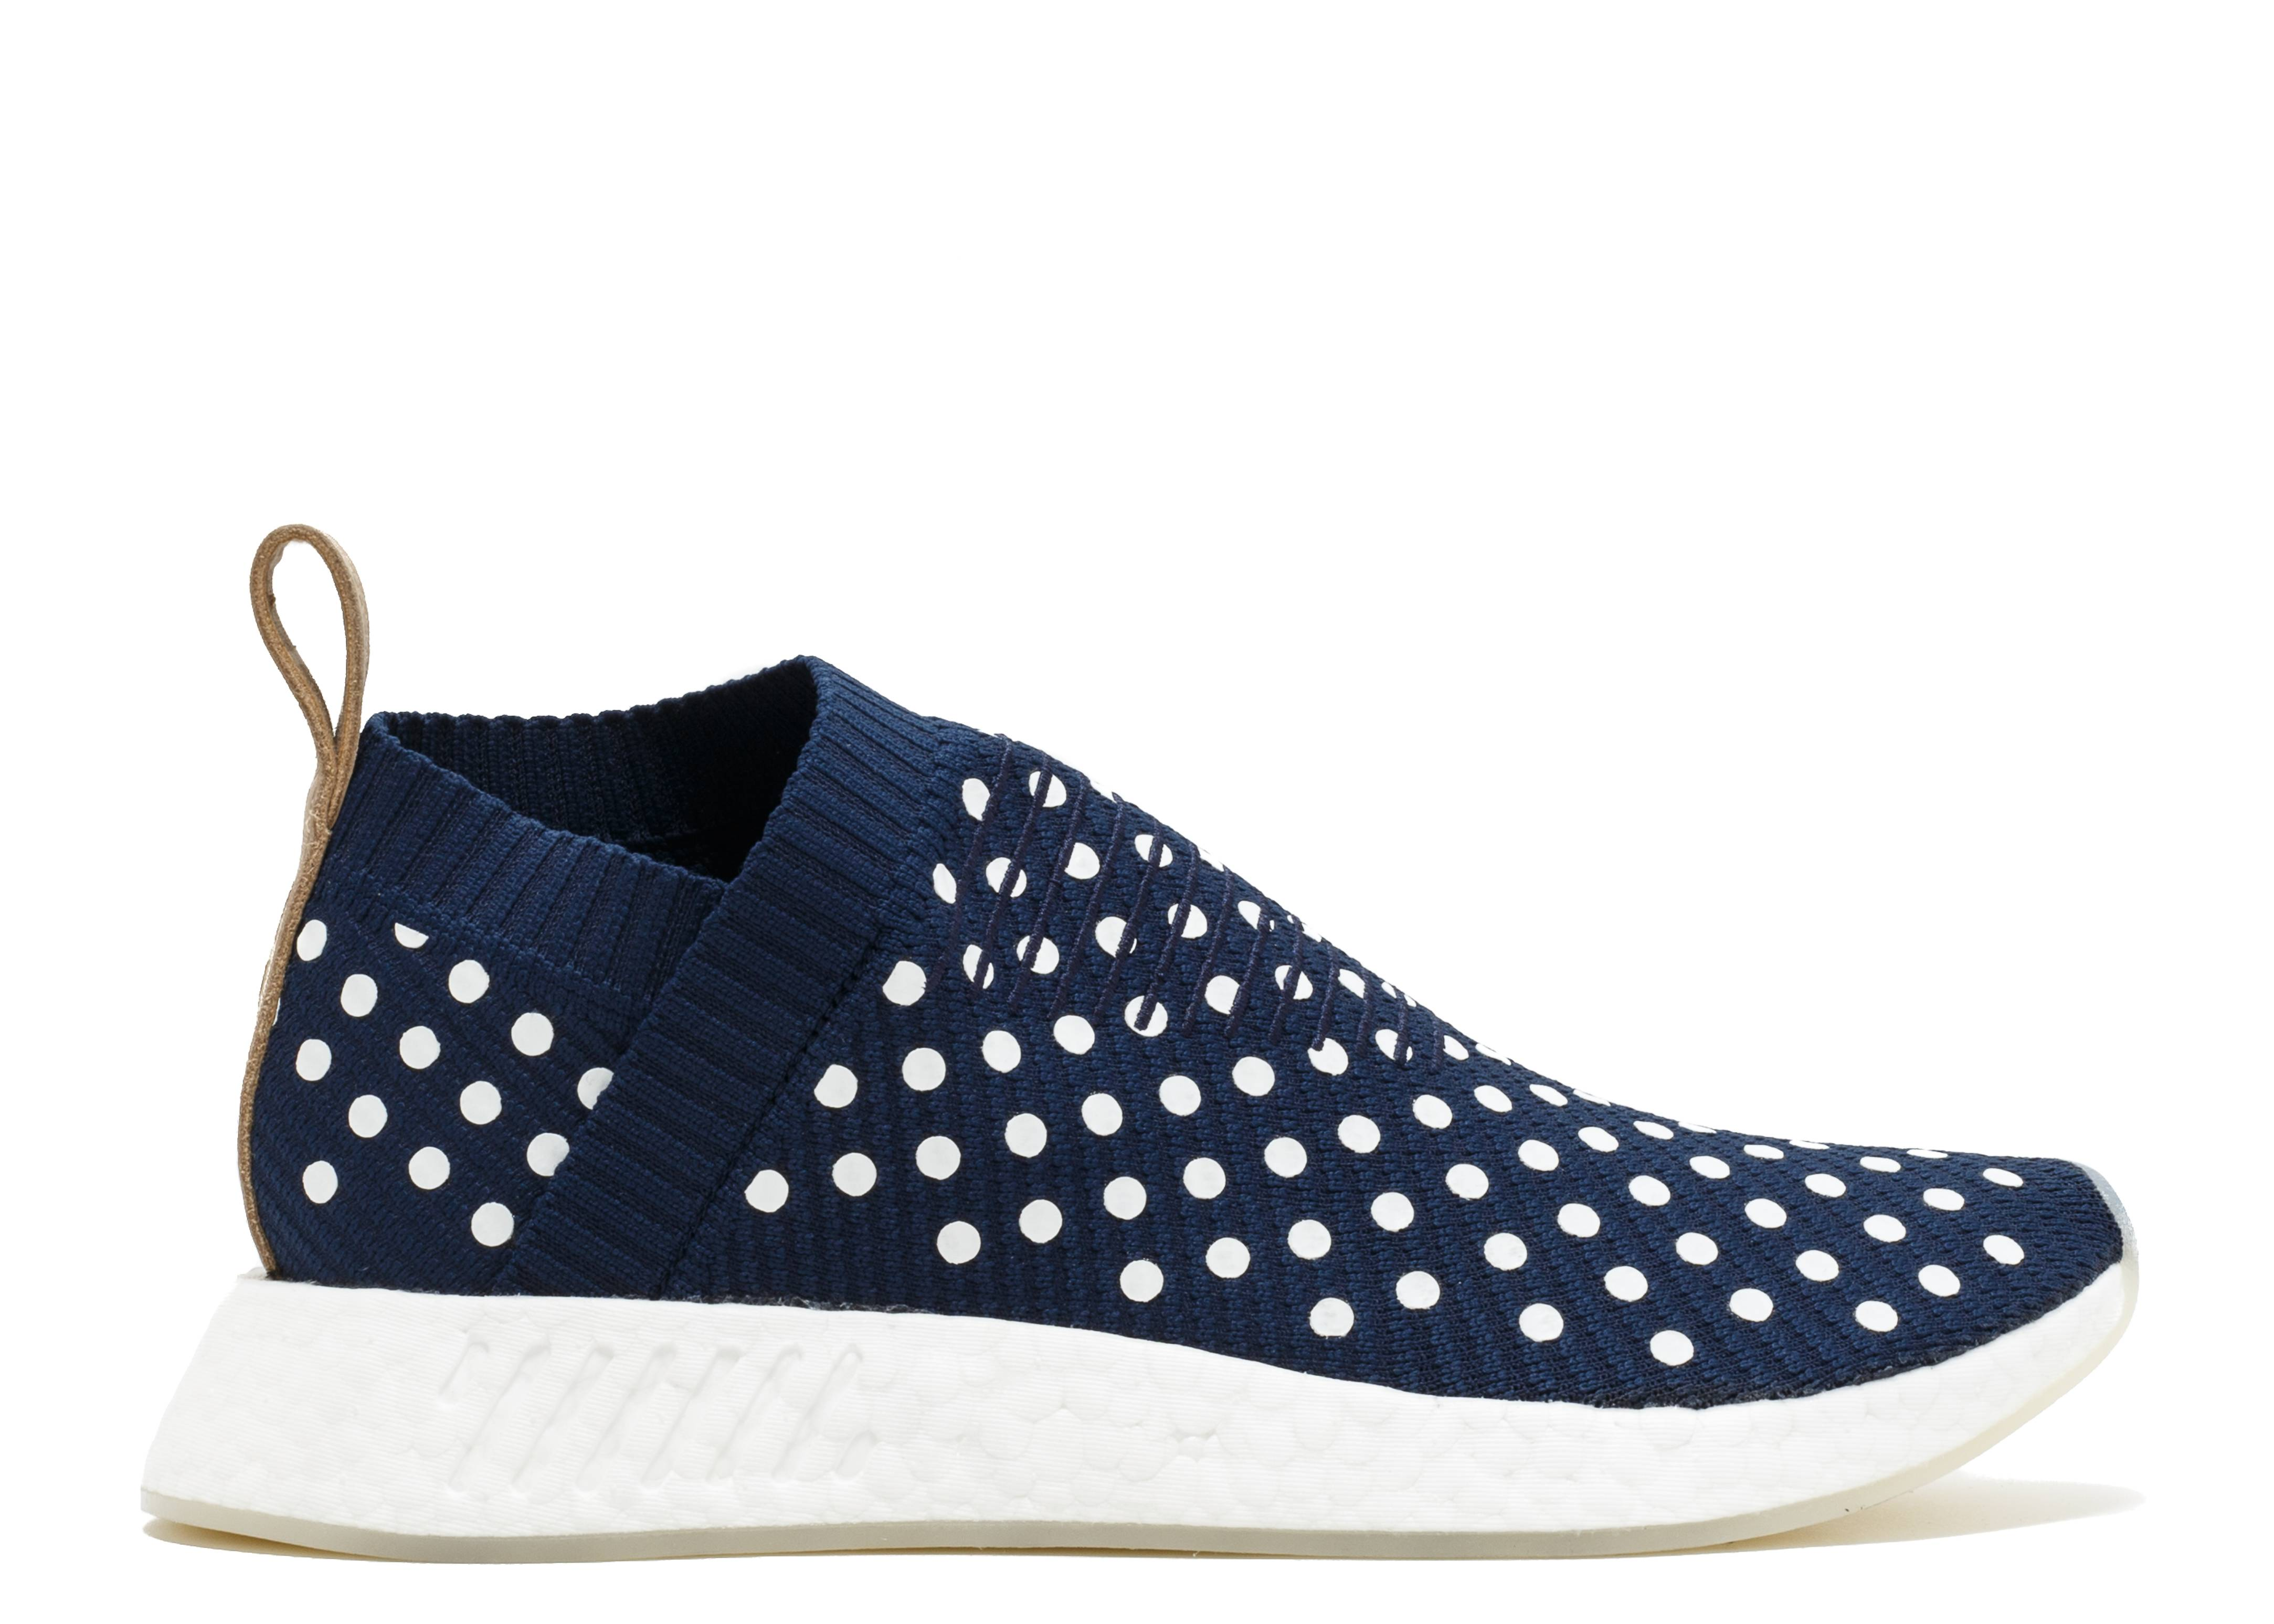 08b8c6dd5 The adidas NMD Chukka and NMD City Sock Will Release In The US